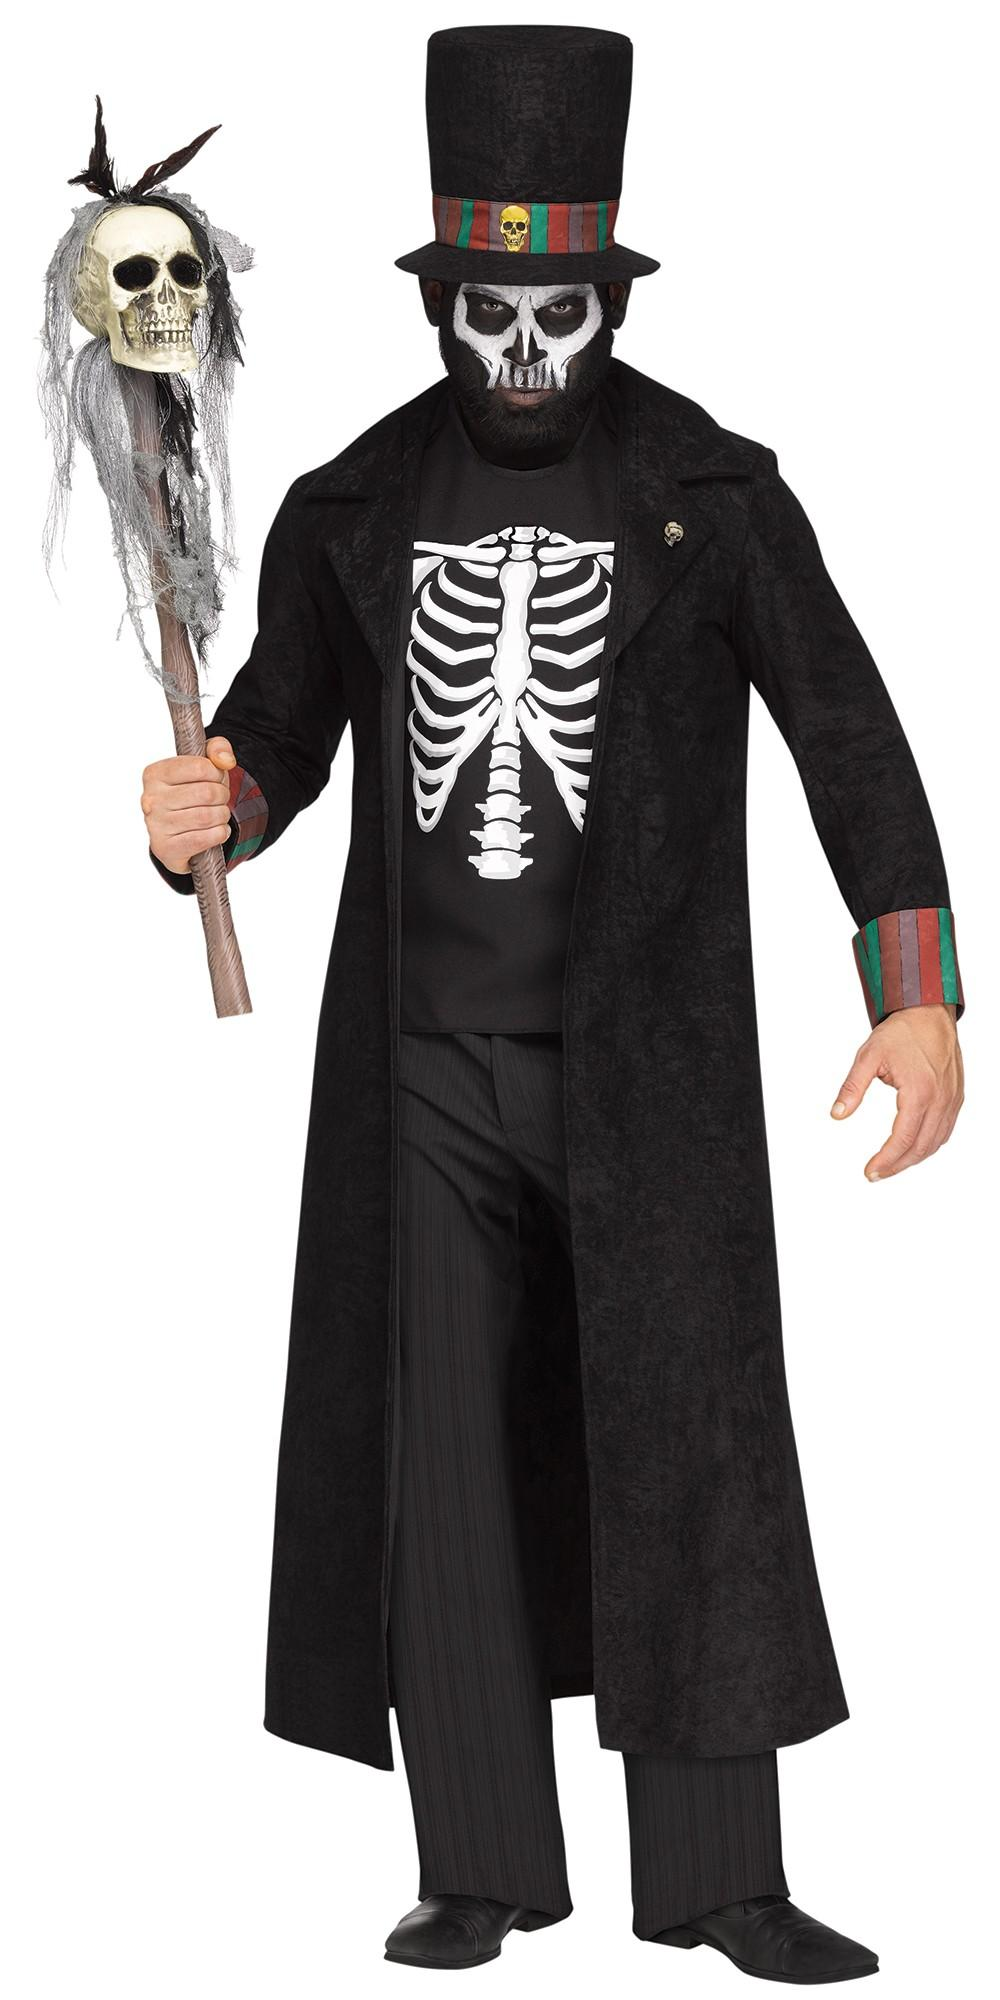 VooDoo King/Witch Doctor Costume